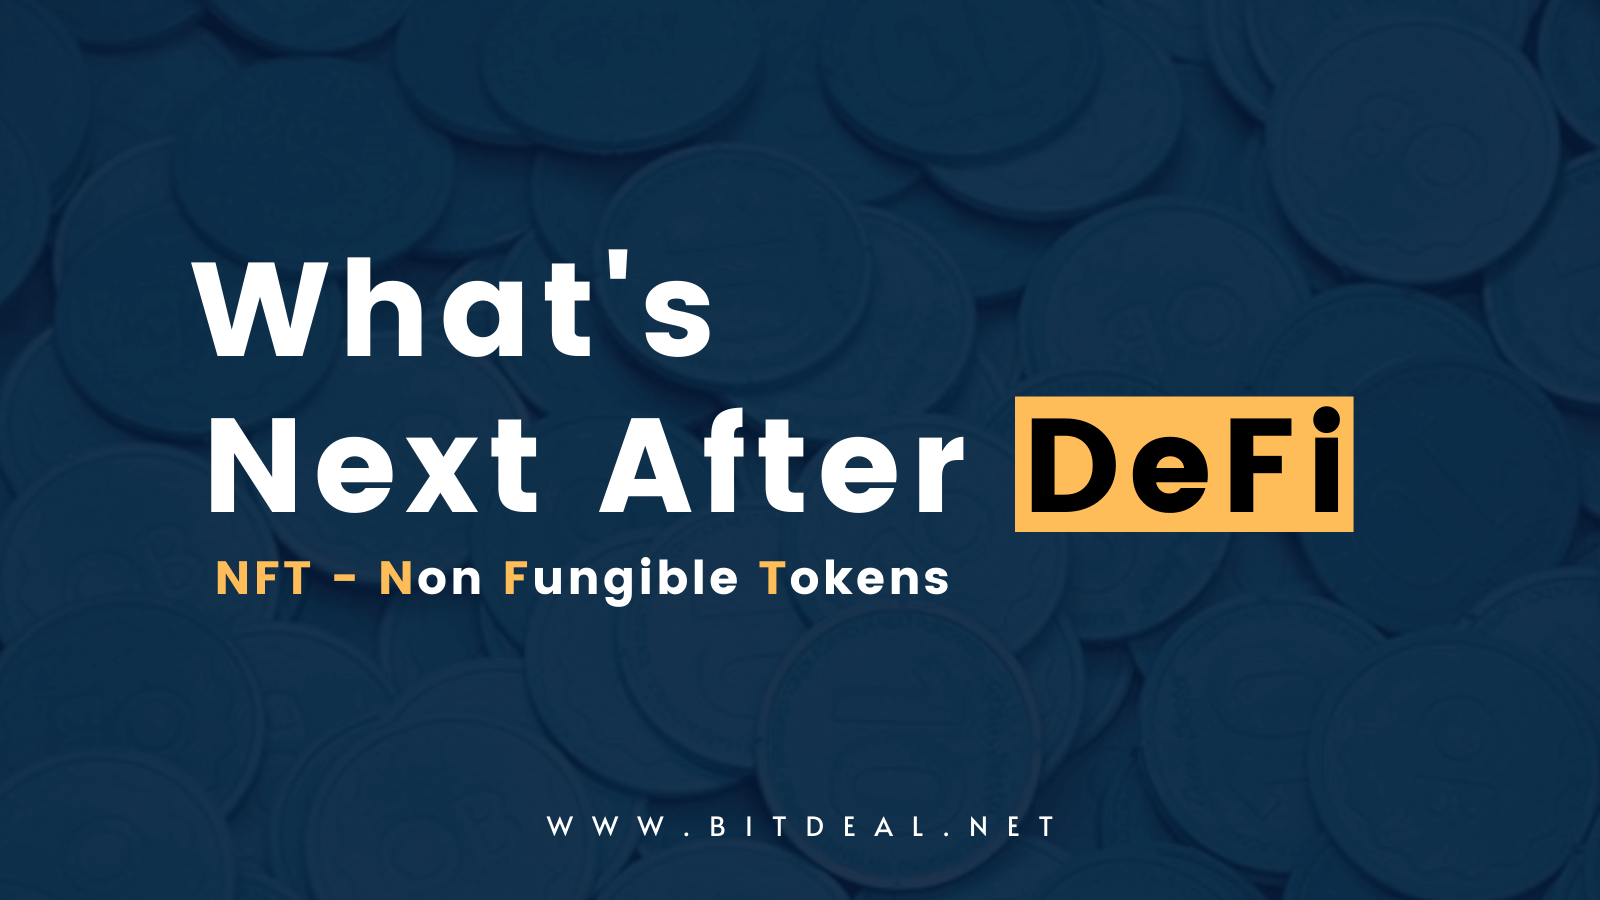 Non Fungible Tokens(NFT) - The Next Big Thing After DeFi